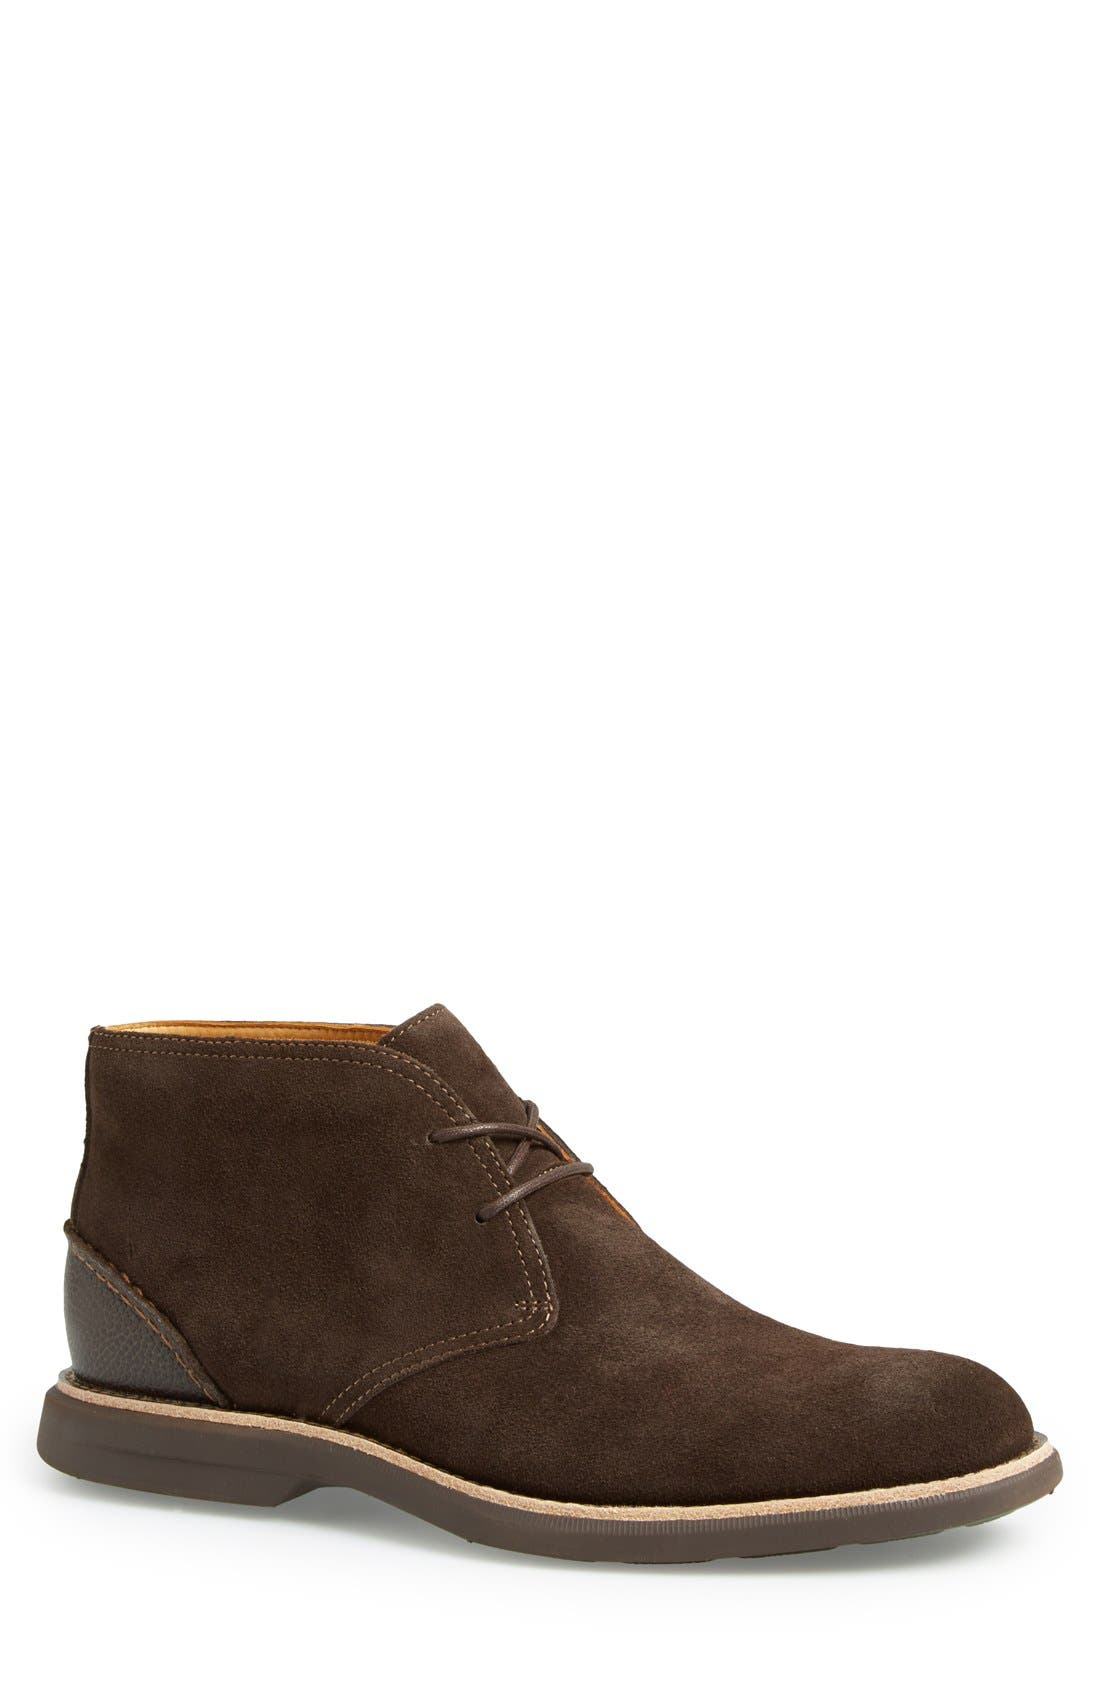 Main Image - Sperry 'Gold Cup - Bellingham' Chukka Boot